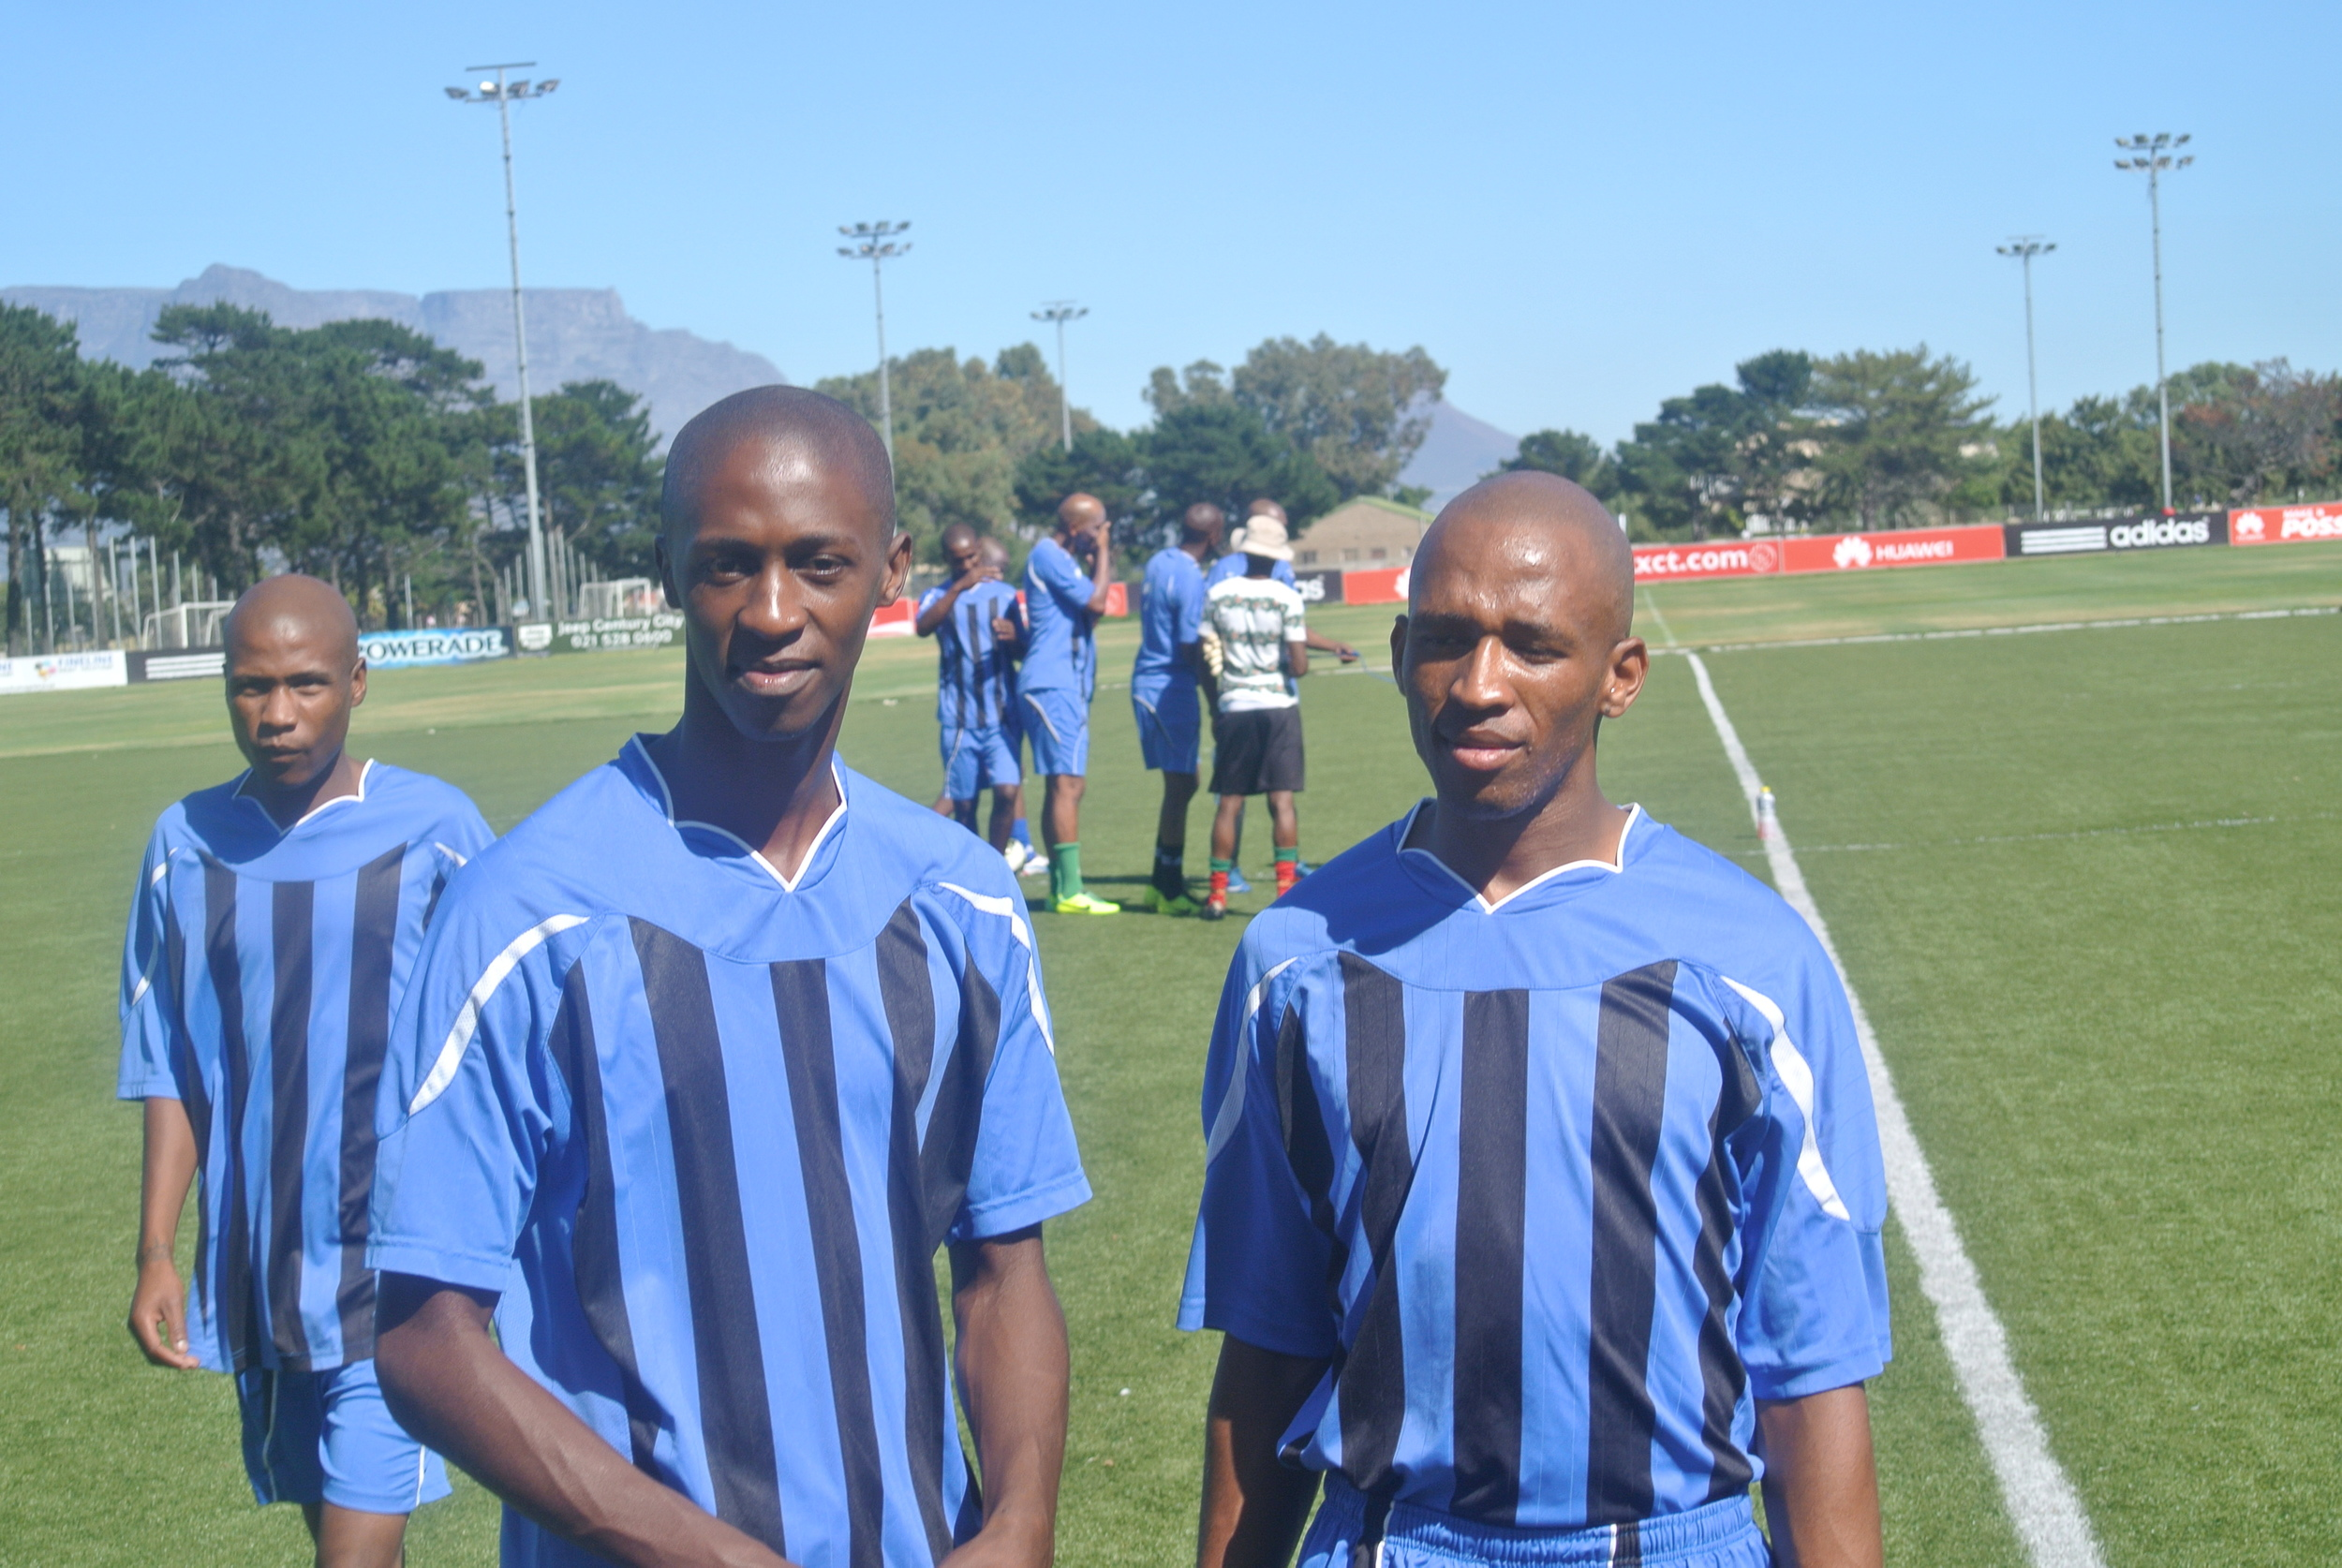 Warren, Vuyo and Xola (from left to right) getting ready for the big game.